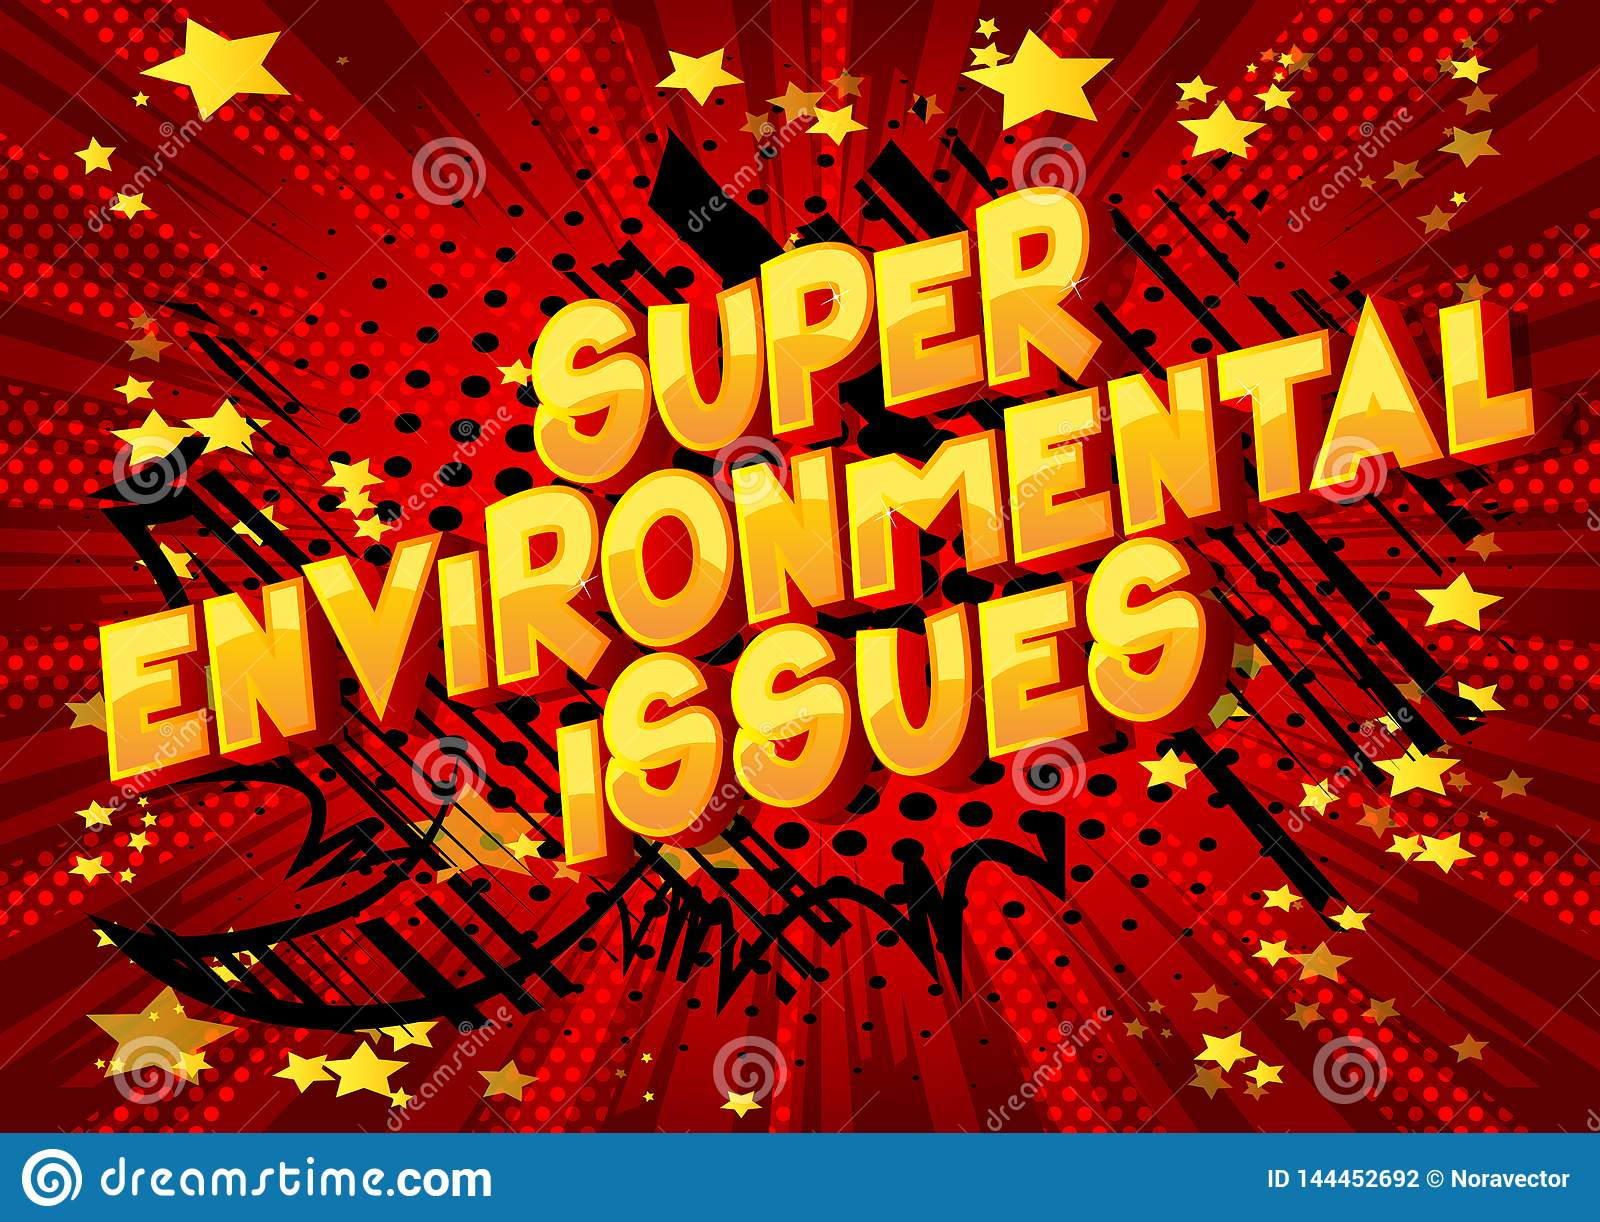 Super Environmental Issues - Comic book style words.